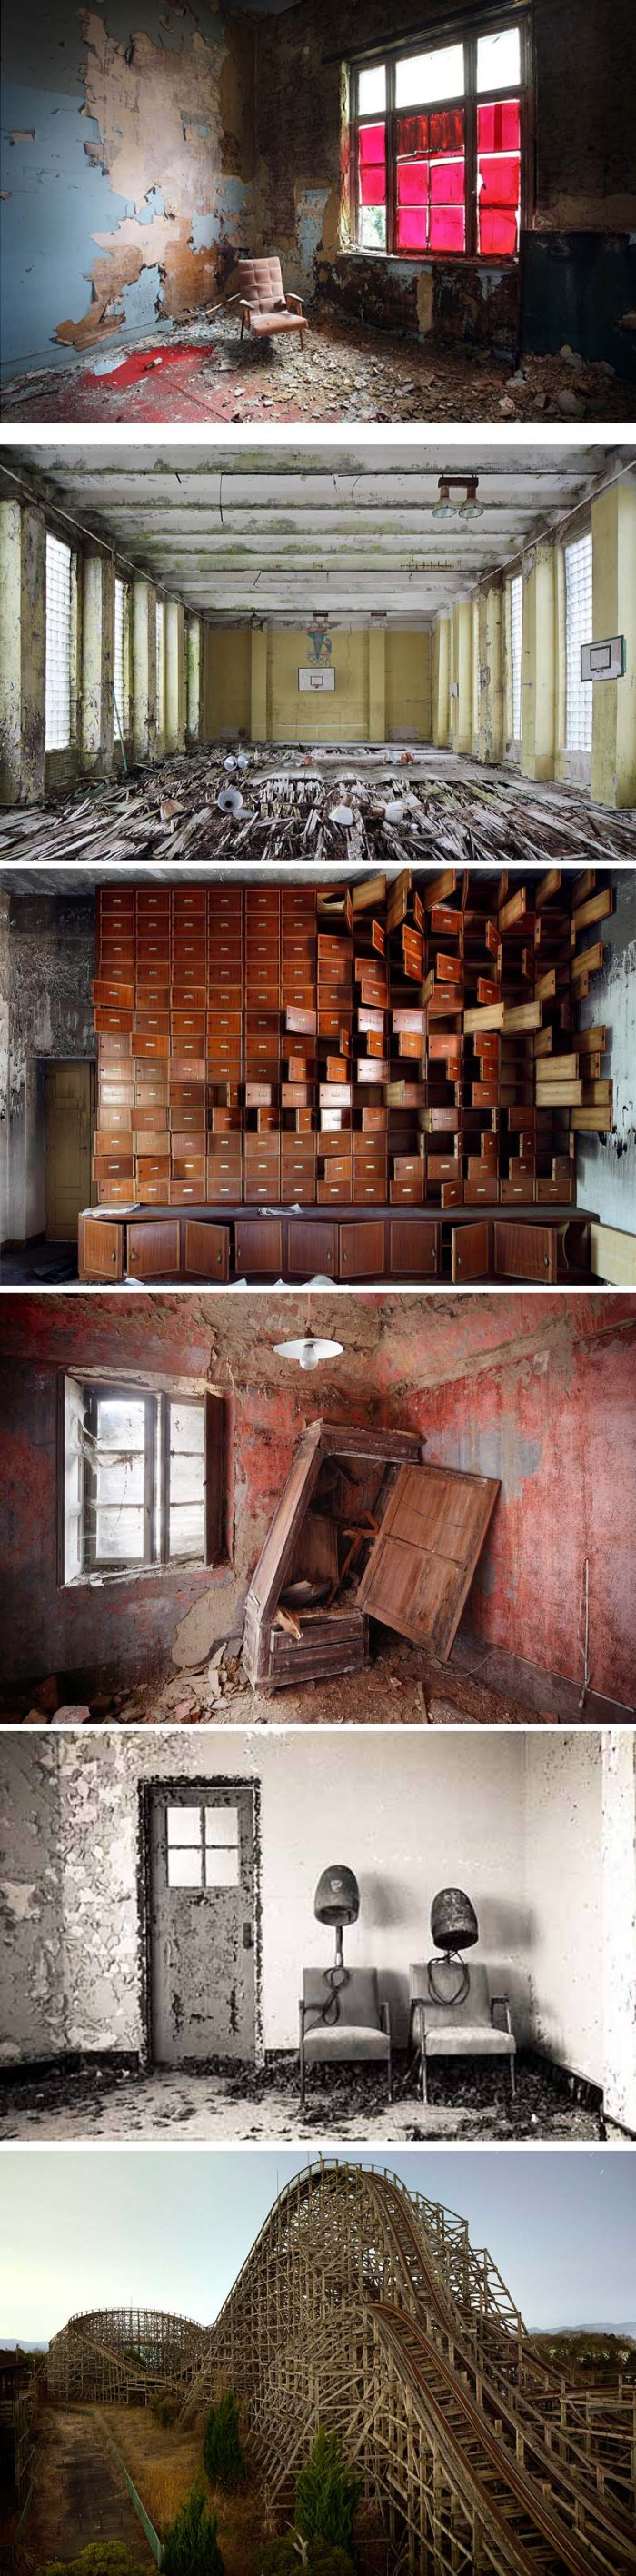 Photographs of abandoned places by Henk van Rensbergen, abandoned homes, offices, amusement parks, hair salon